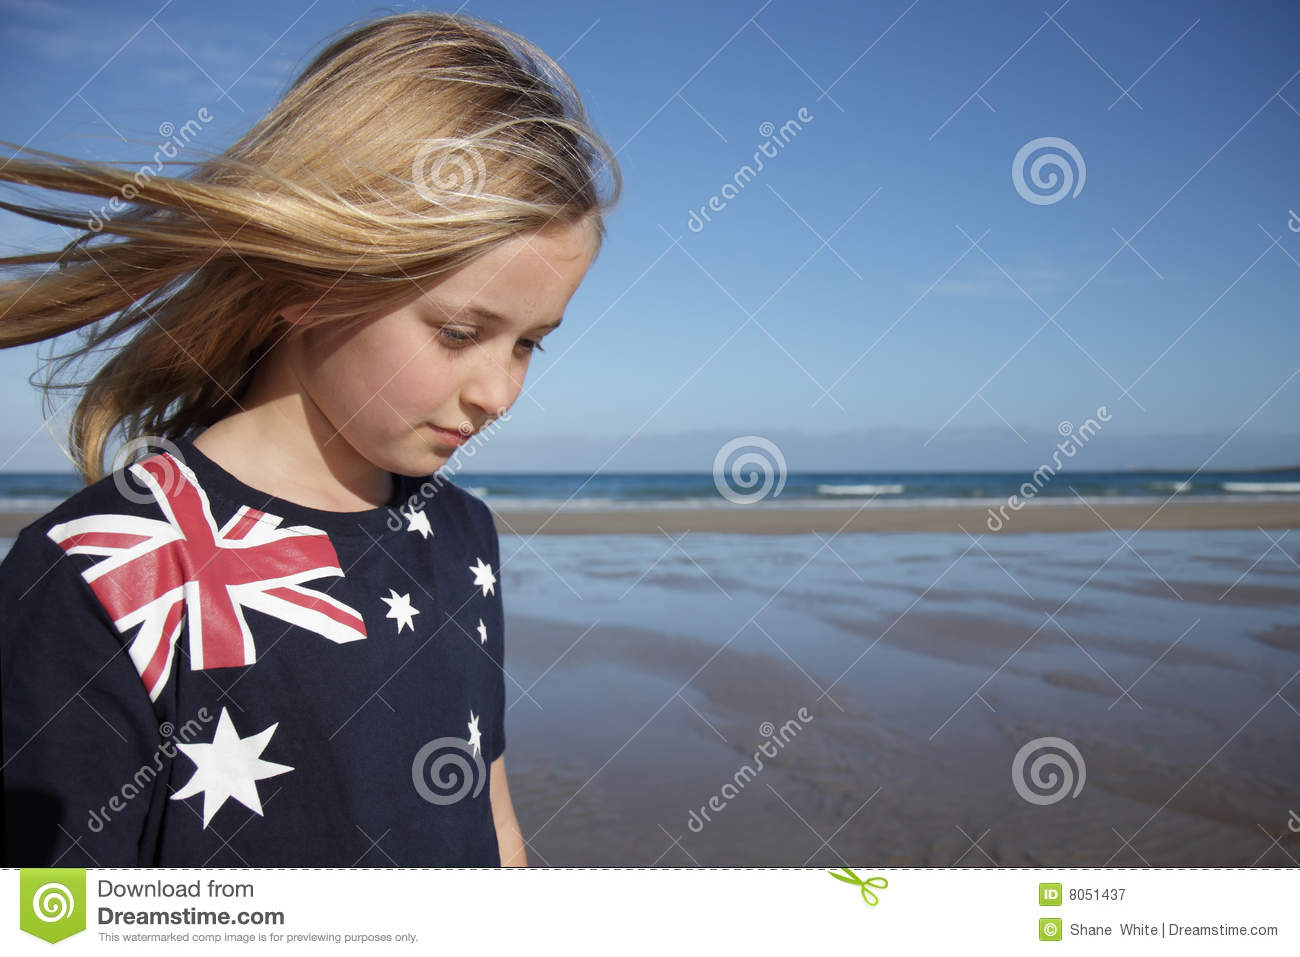 Aussie Girl Stock Image Image Of Southern, Australian - 8051437-7784